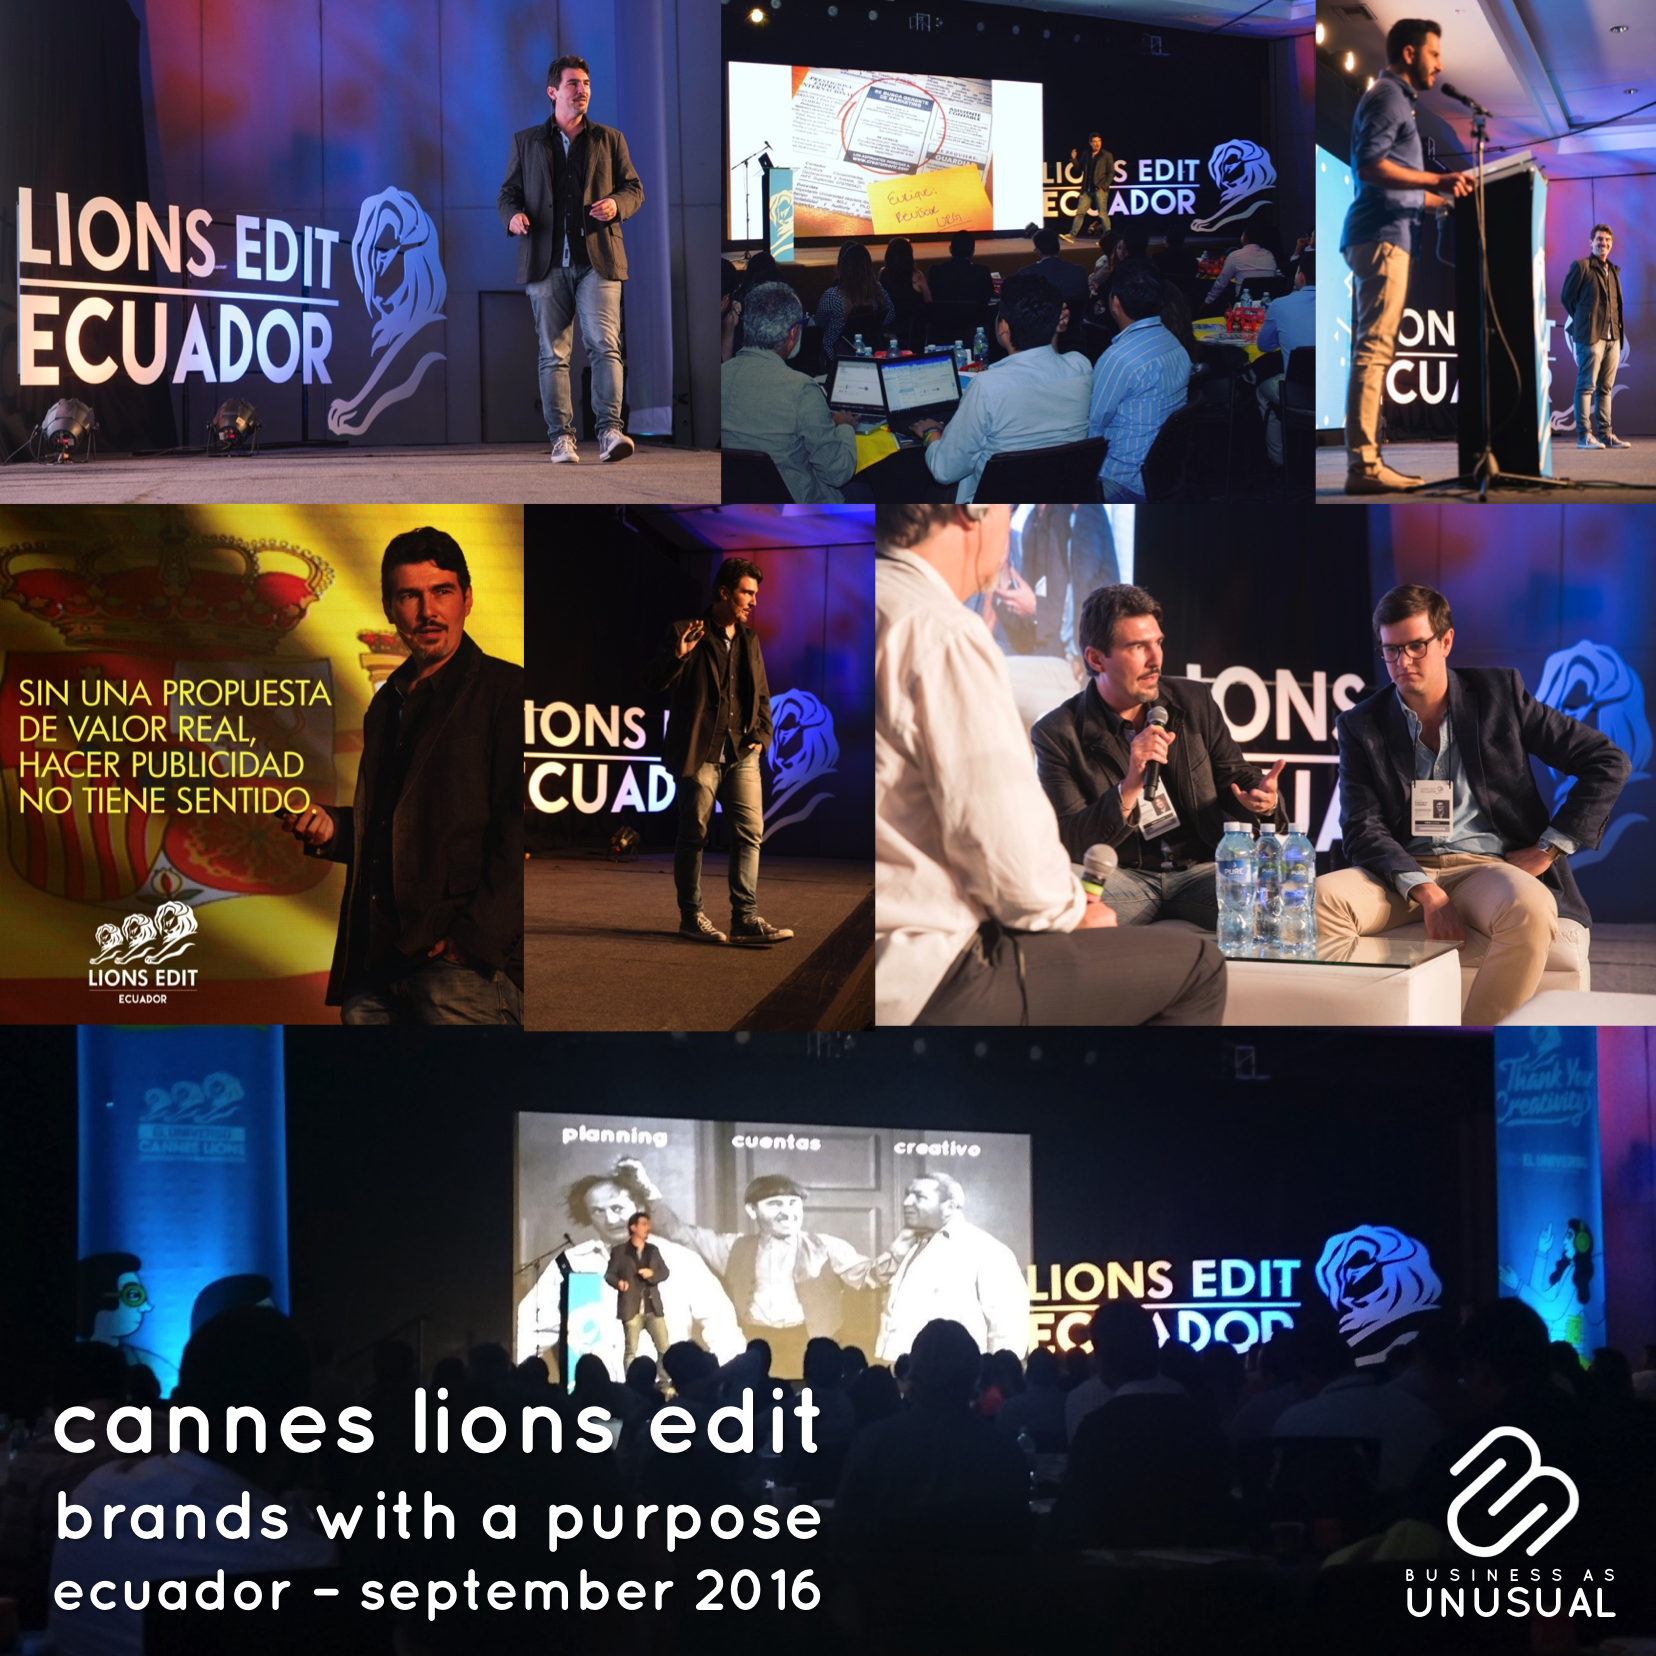 Cannes Lions Edit Ecuador - Brands with a Purpose